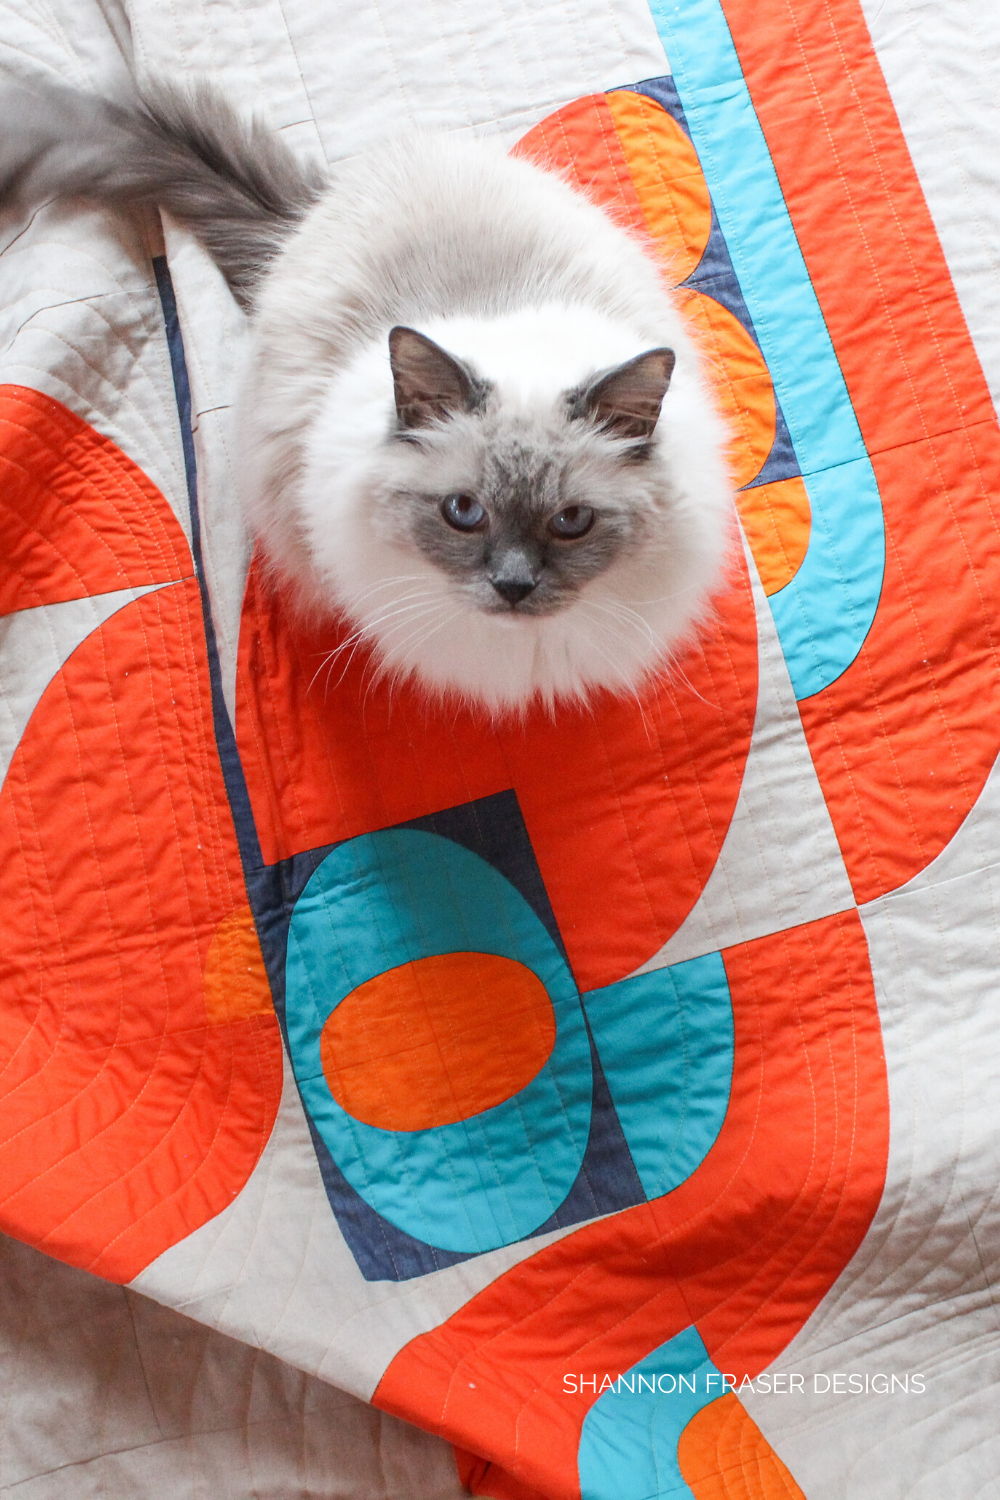 Pips sitting on the lap Cloud Surfing Quilt | Shannon Fraser Designs